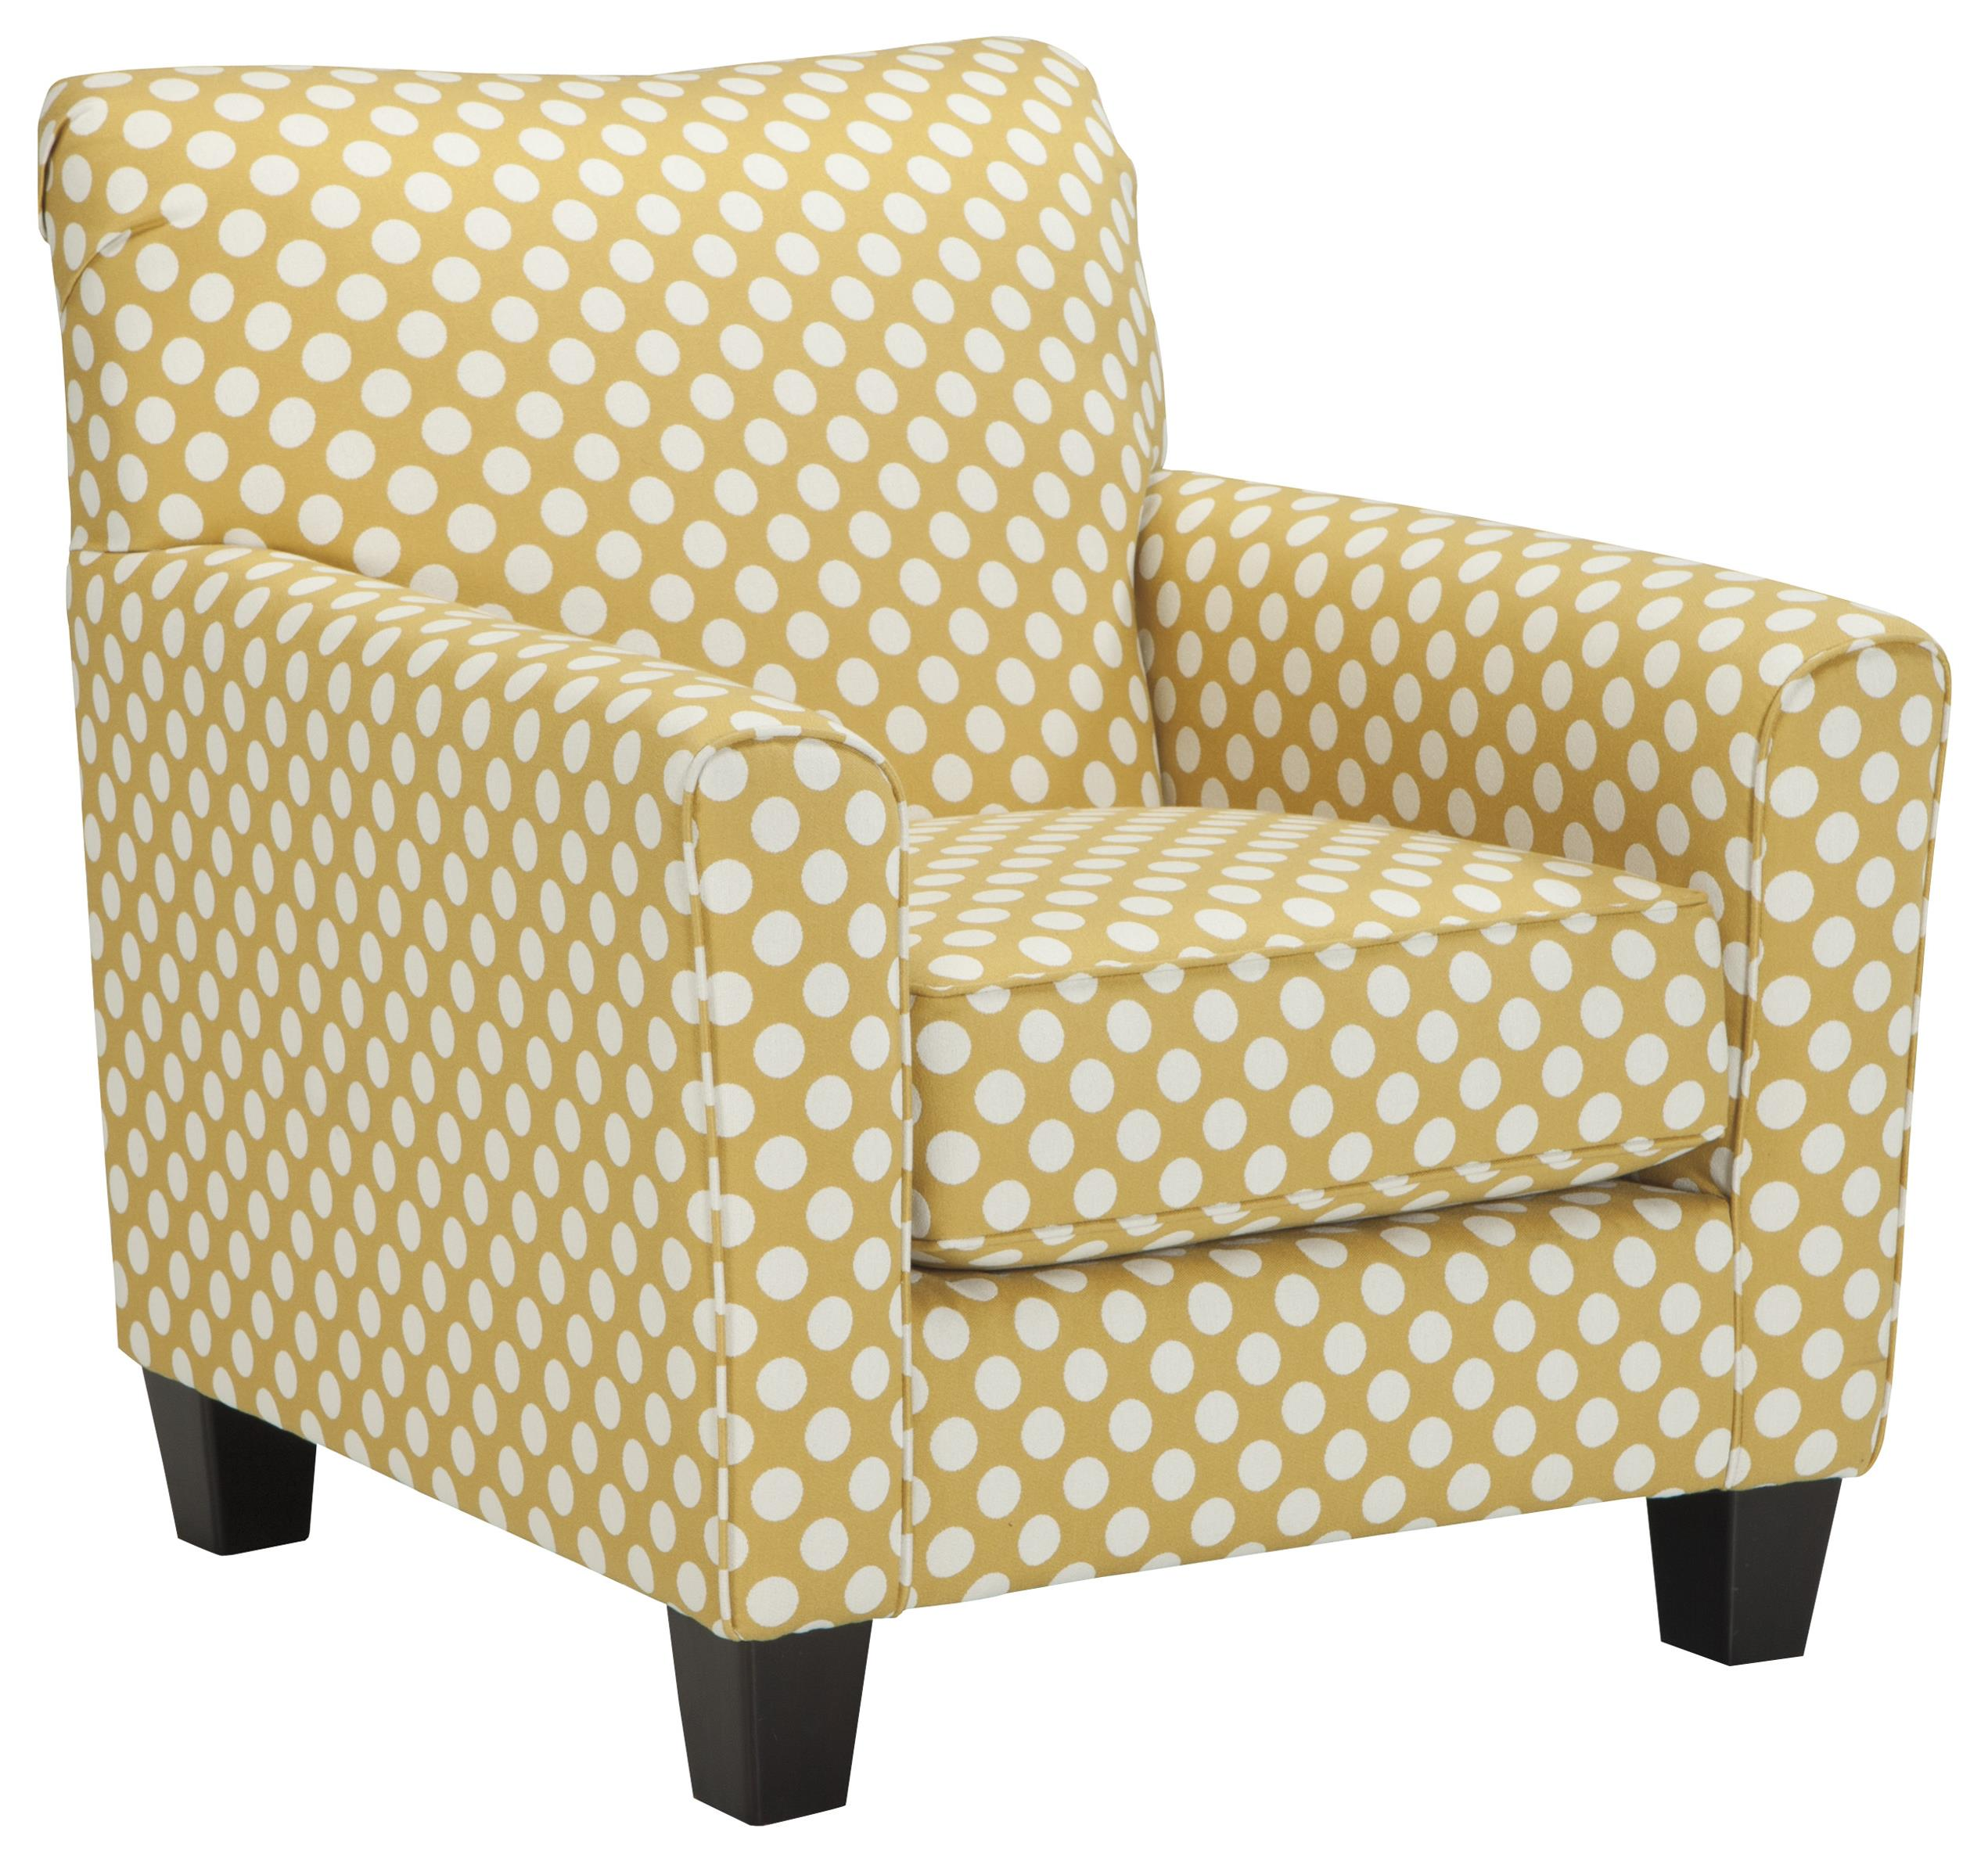 Benchcraft Brindon Accent Chair - Item Number: 5390121